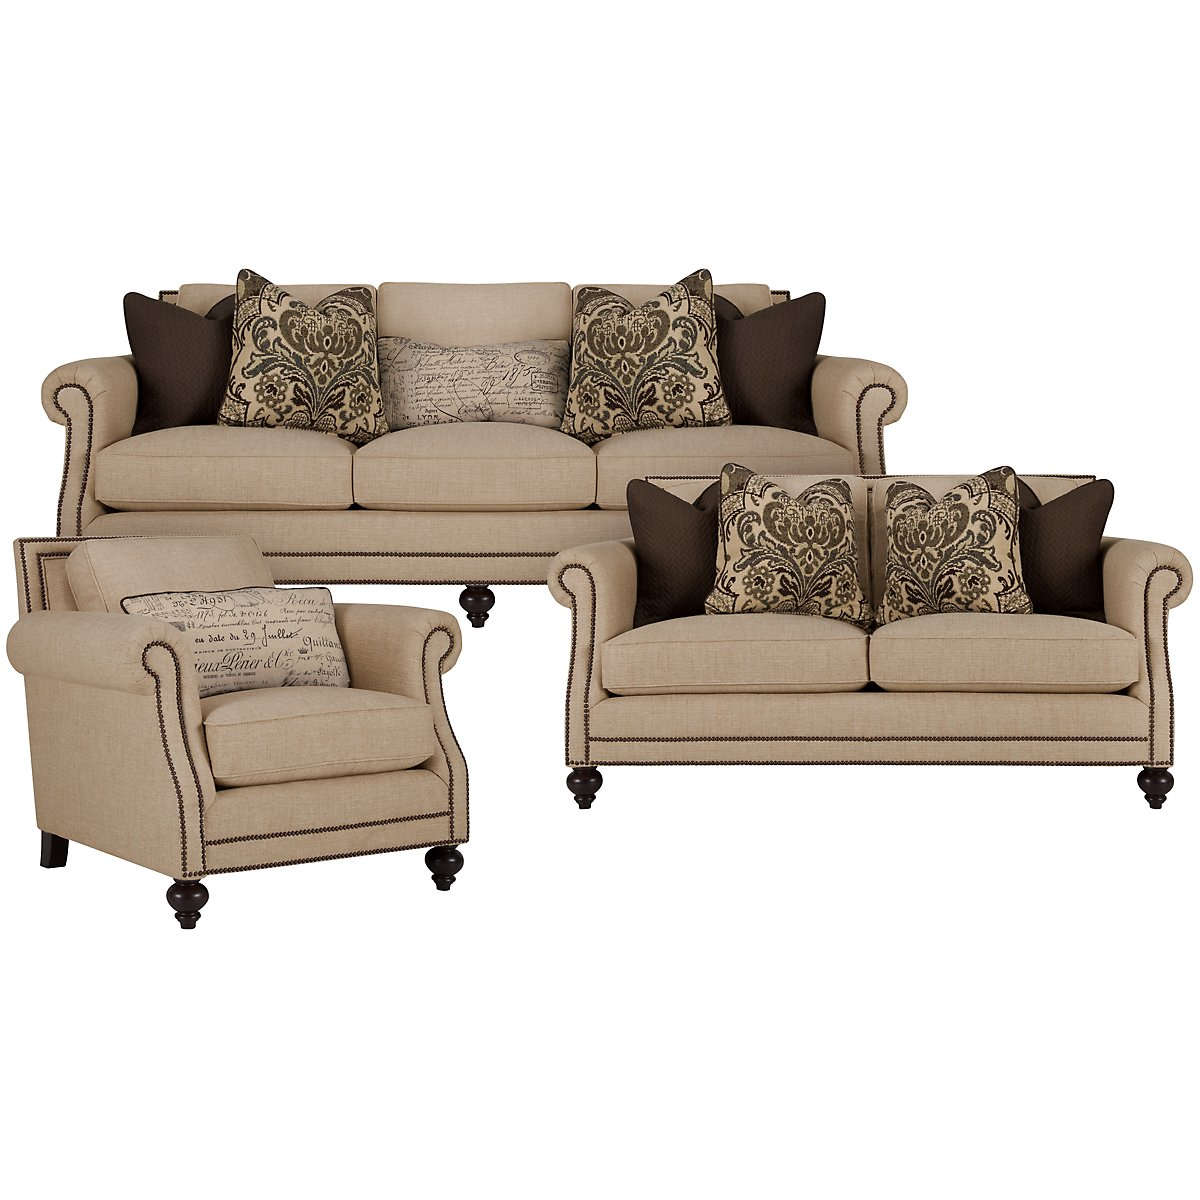 Bernhardt brae sofa bernhardt living room brae sectional 832270 furniture fair thesofa Bernhardt living room furniture